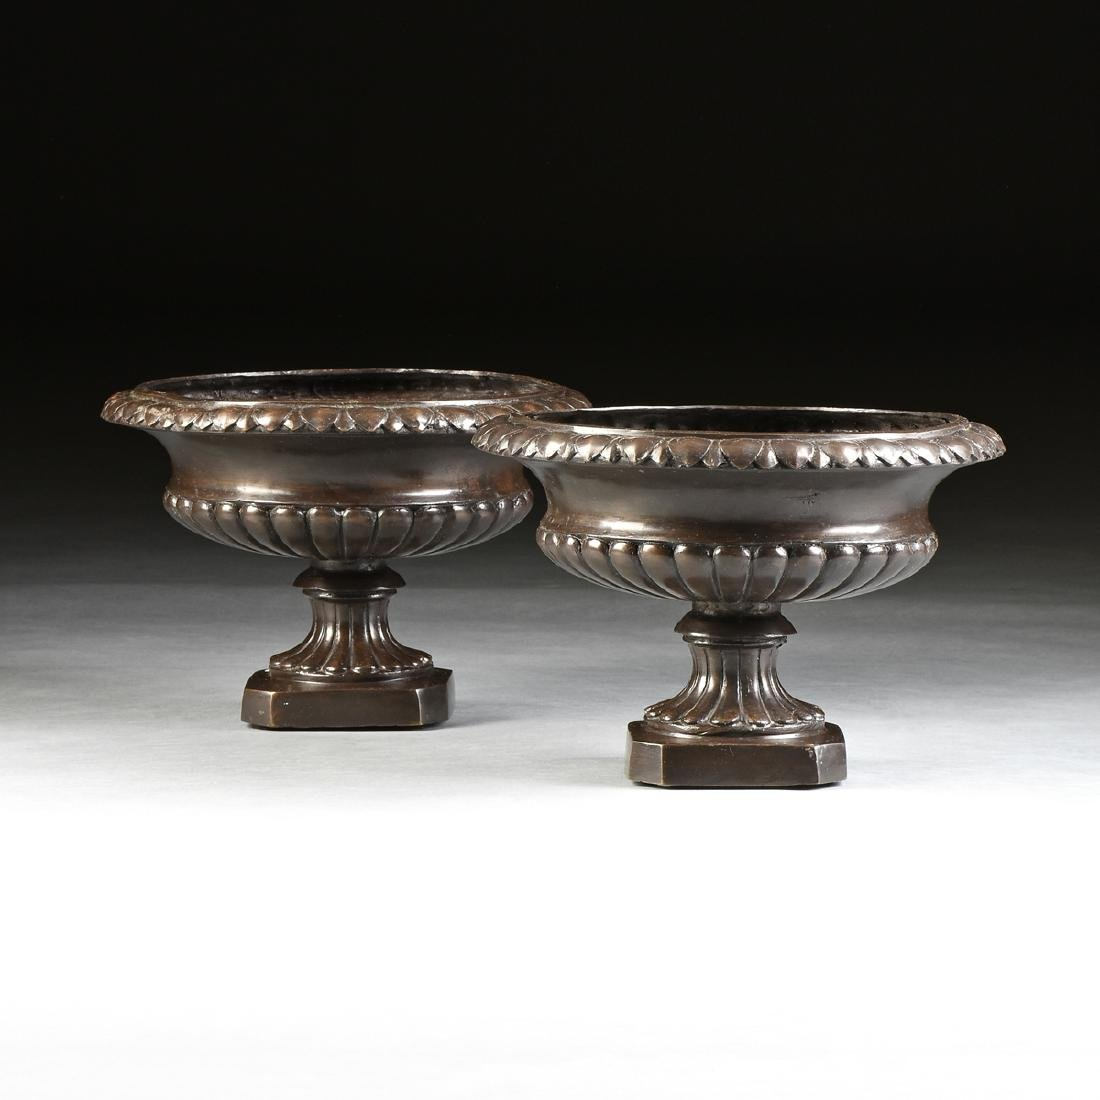 A PAIR OF ANCIENT ROMAN STYLE PATINATED BRONZE URN